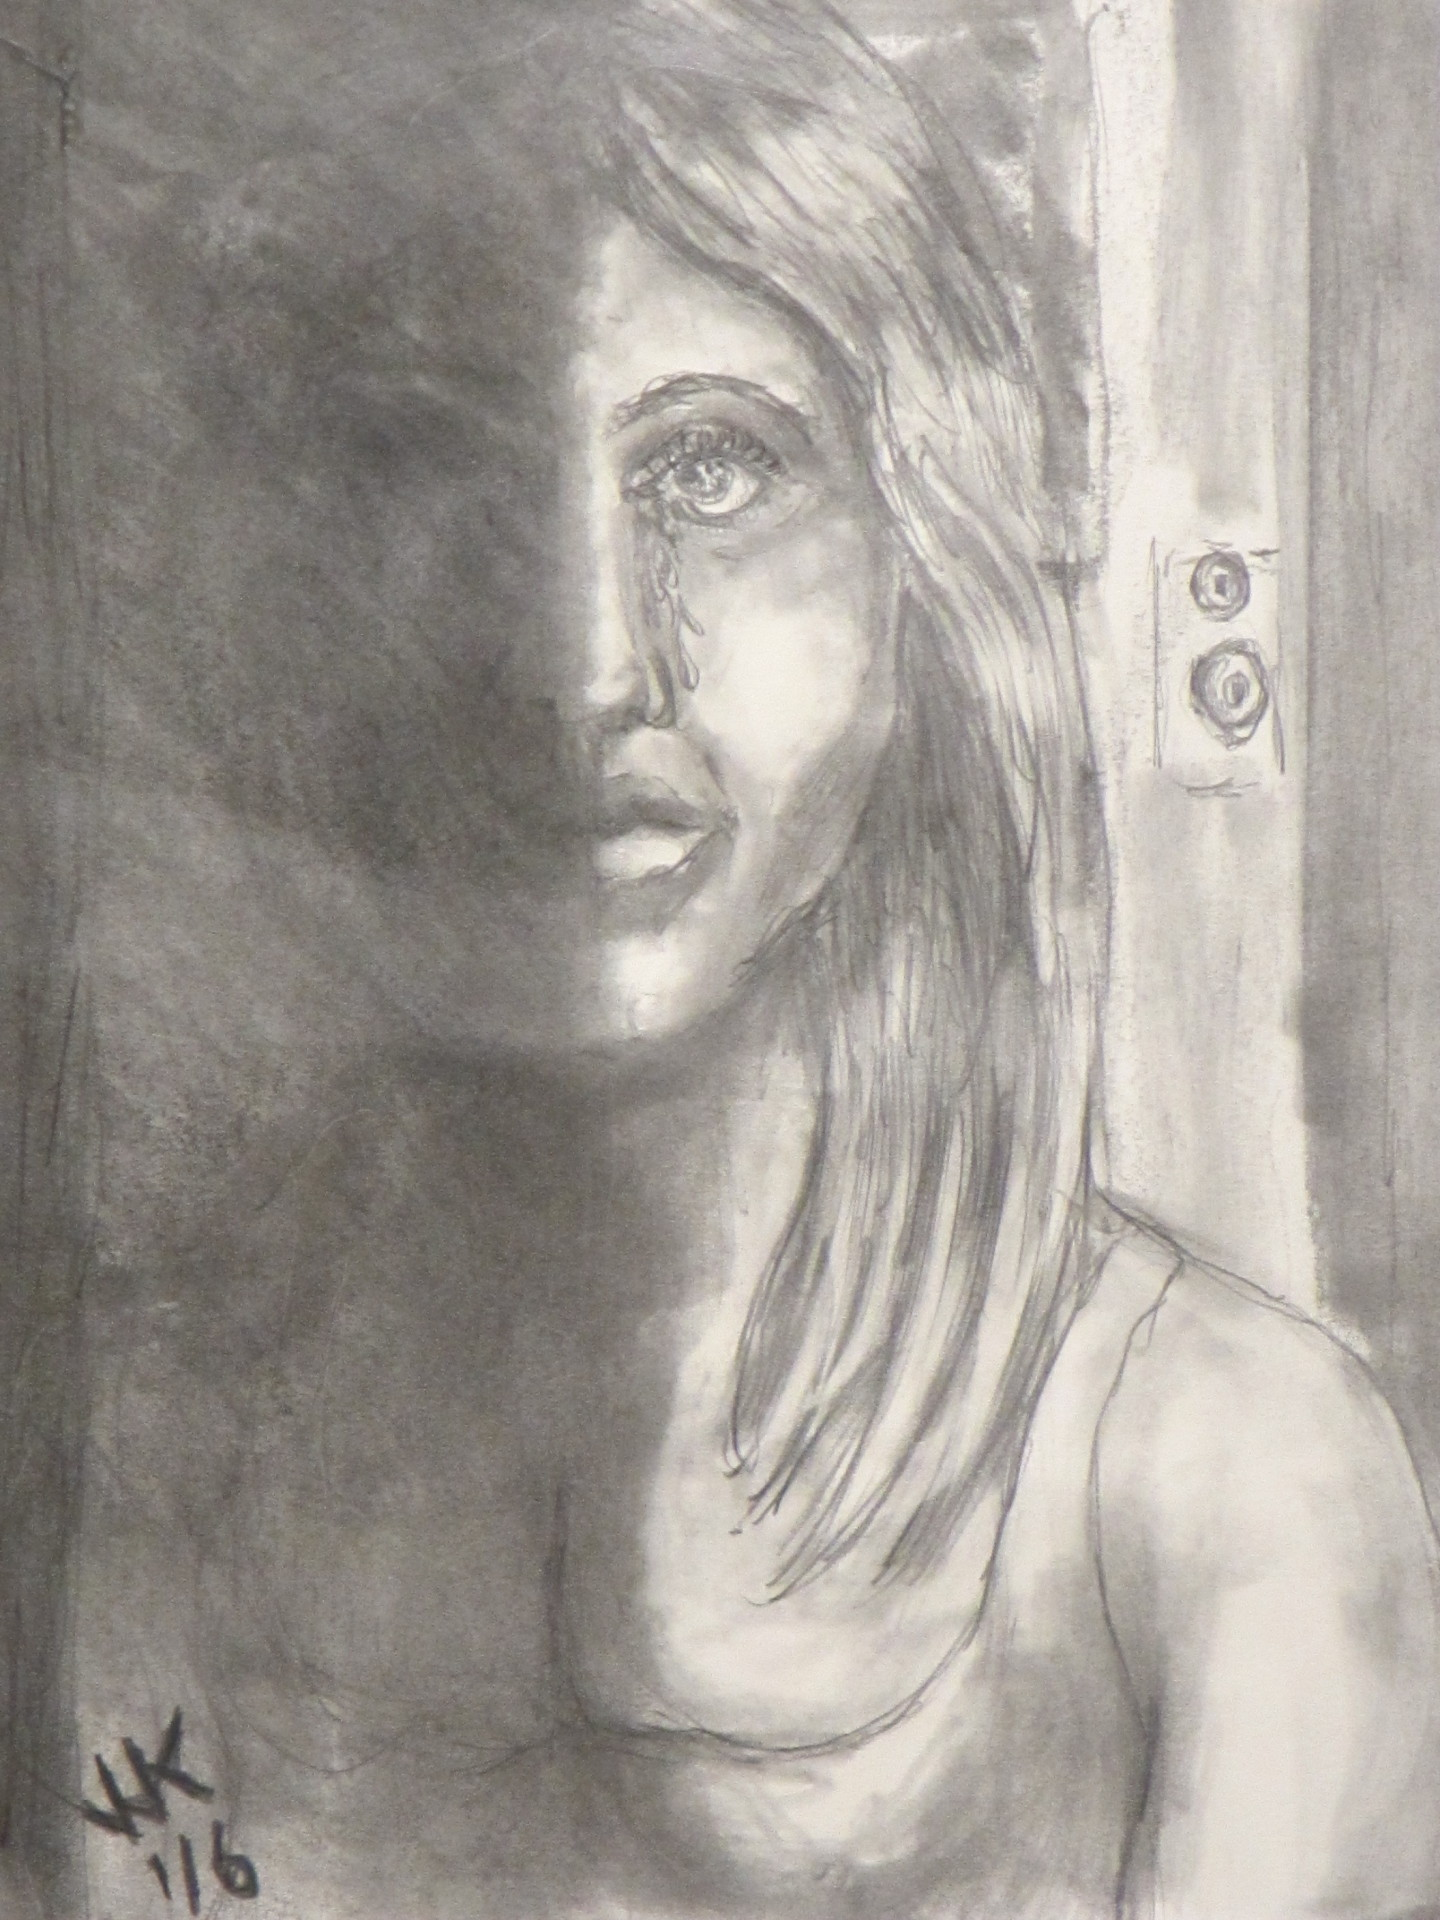 """A homeless girl with no place to sleep. """"Forgotten Faces"""" series number 1."""